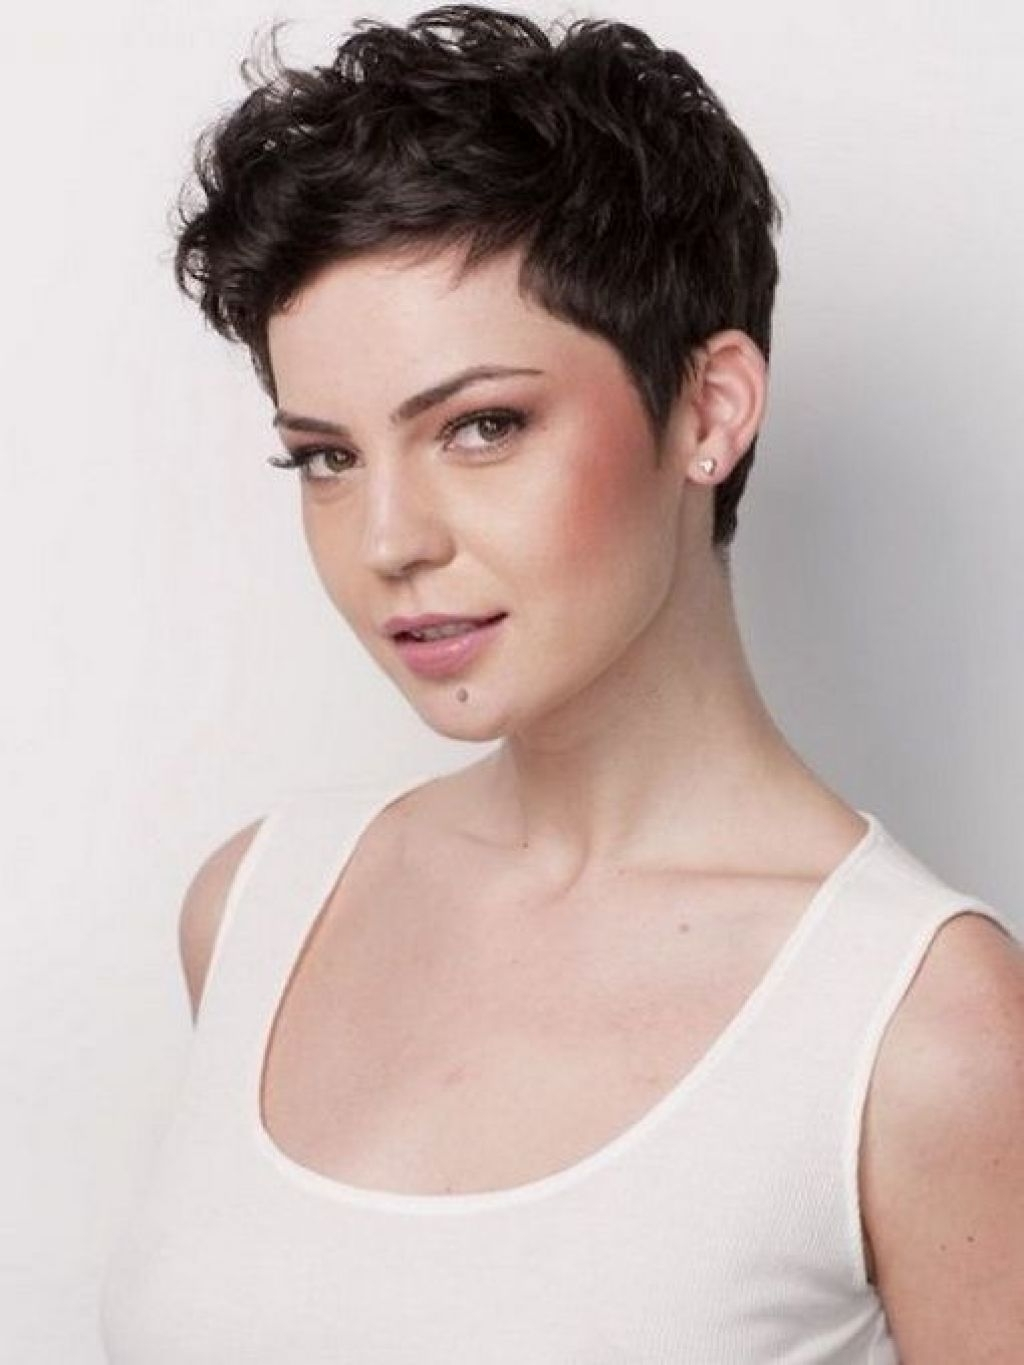 Short Curly Pixie Haircuts   Styles   Pinterest   Curly Pixie Throughout 2018 Wavy Pixie Hairstyles (View 15 of 15)